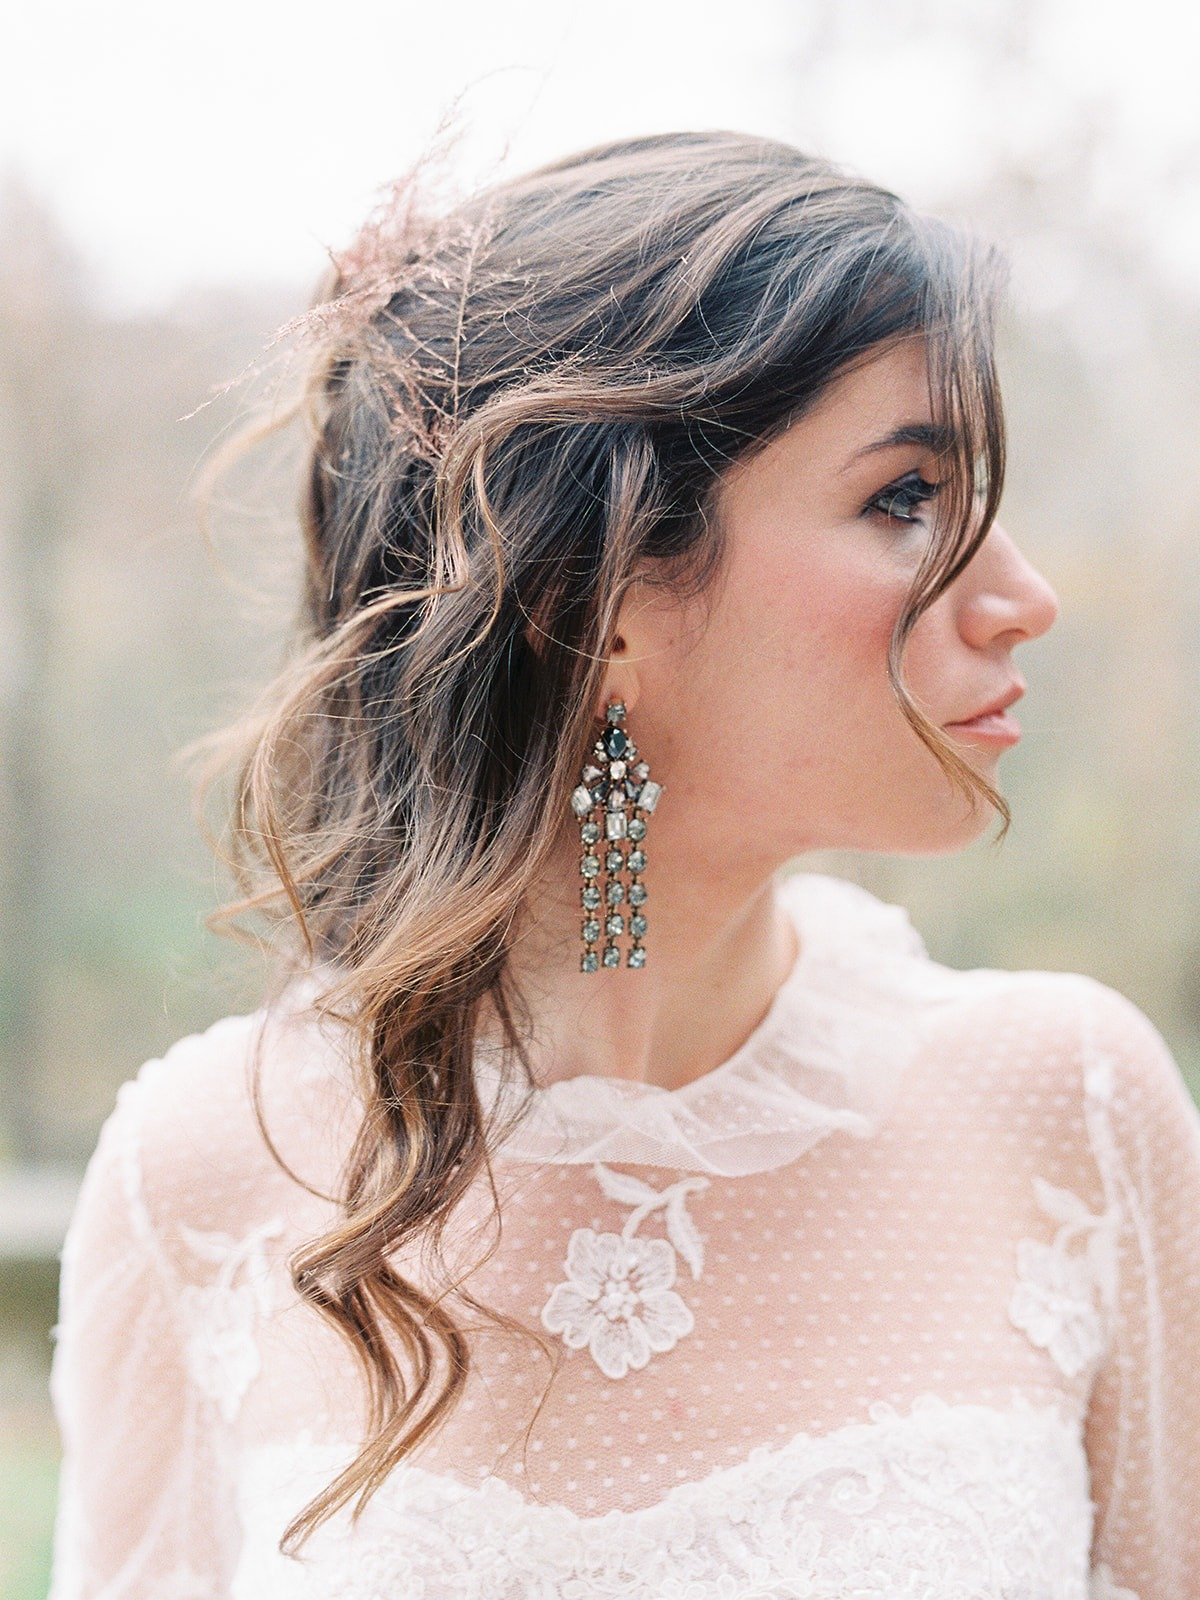 Bridal hair and jewelry